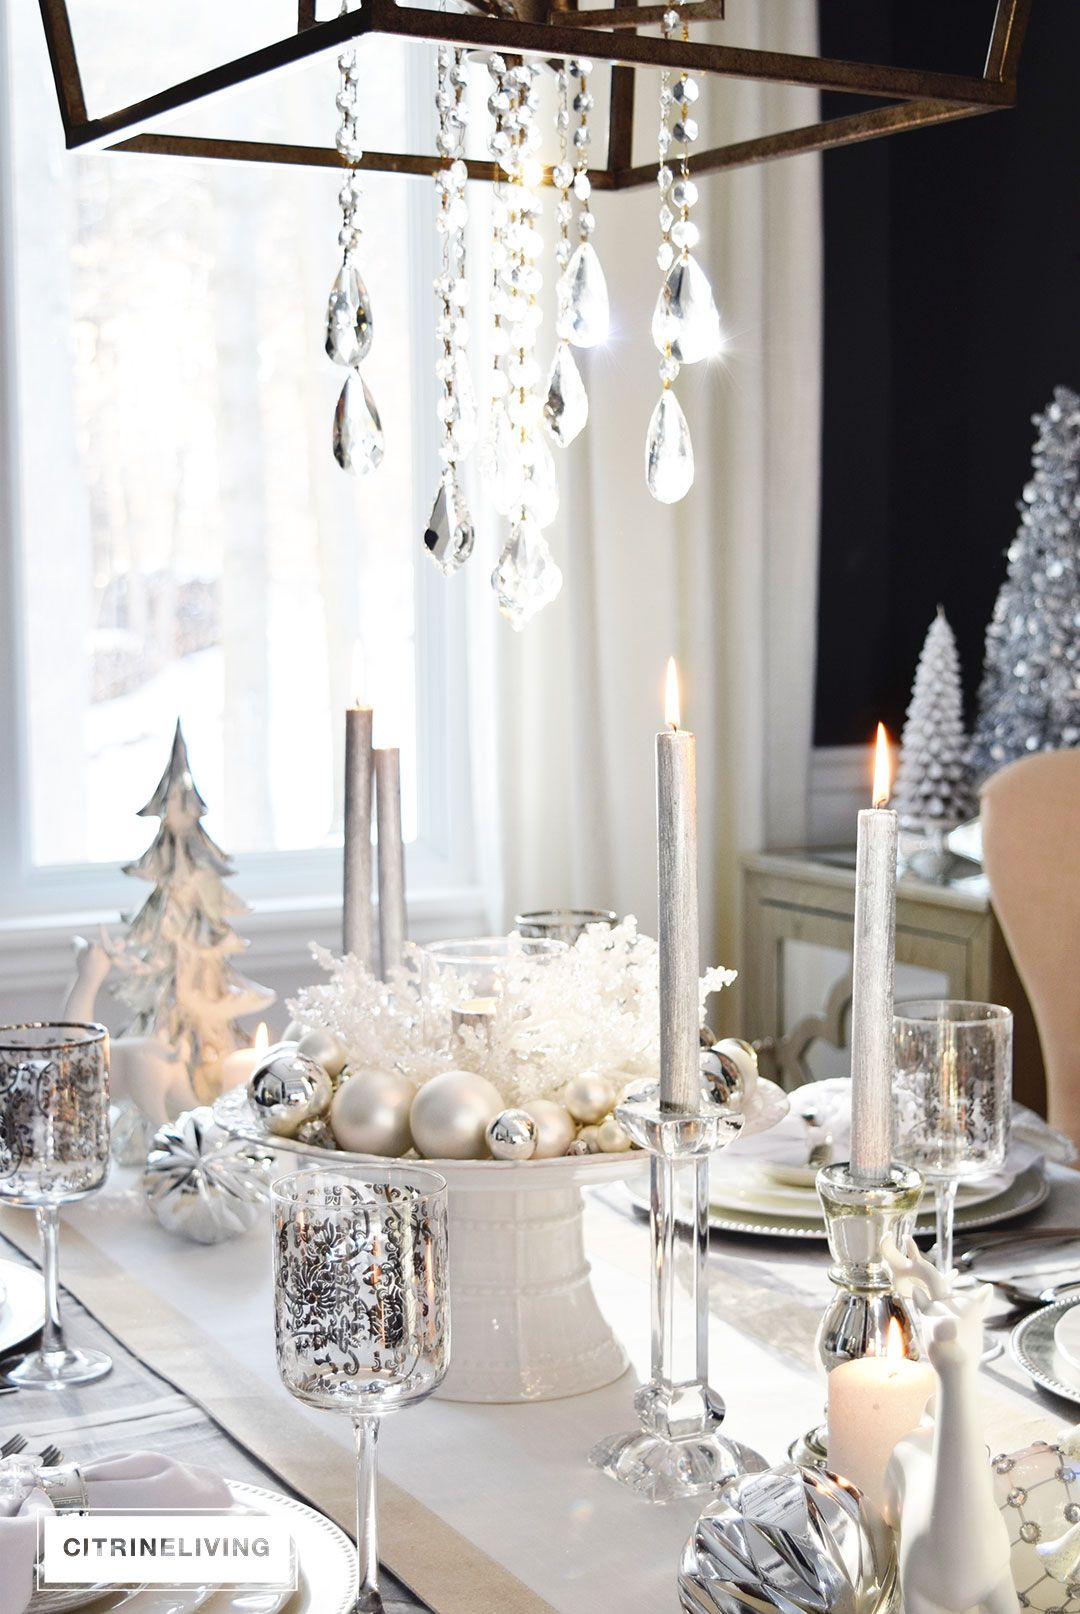 Pin By Angela Monique On Christmas Tables Tablescapebloghop Holiday Centerpieces Christmas Table Decorations White Christmas Decor